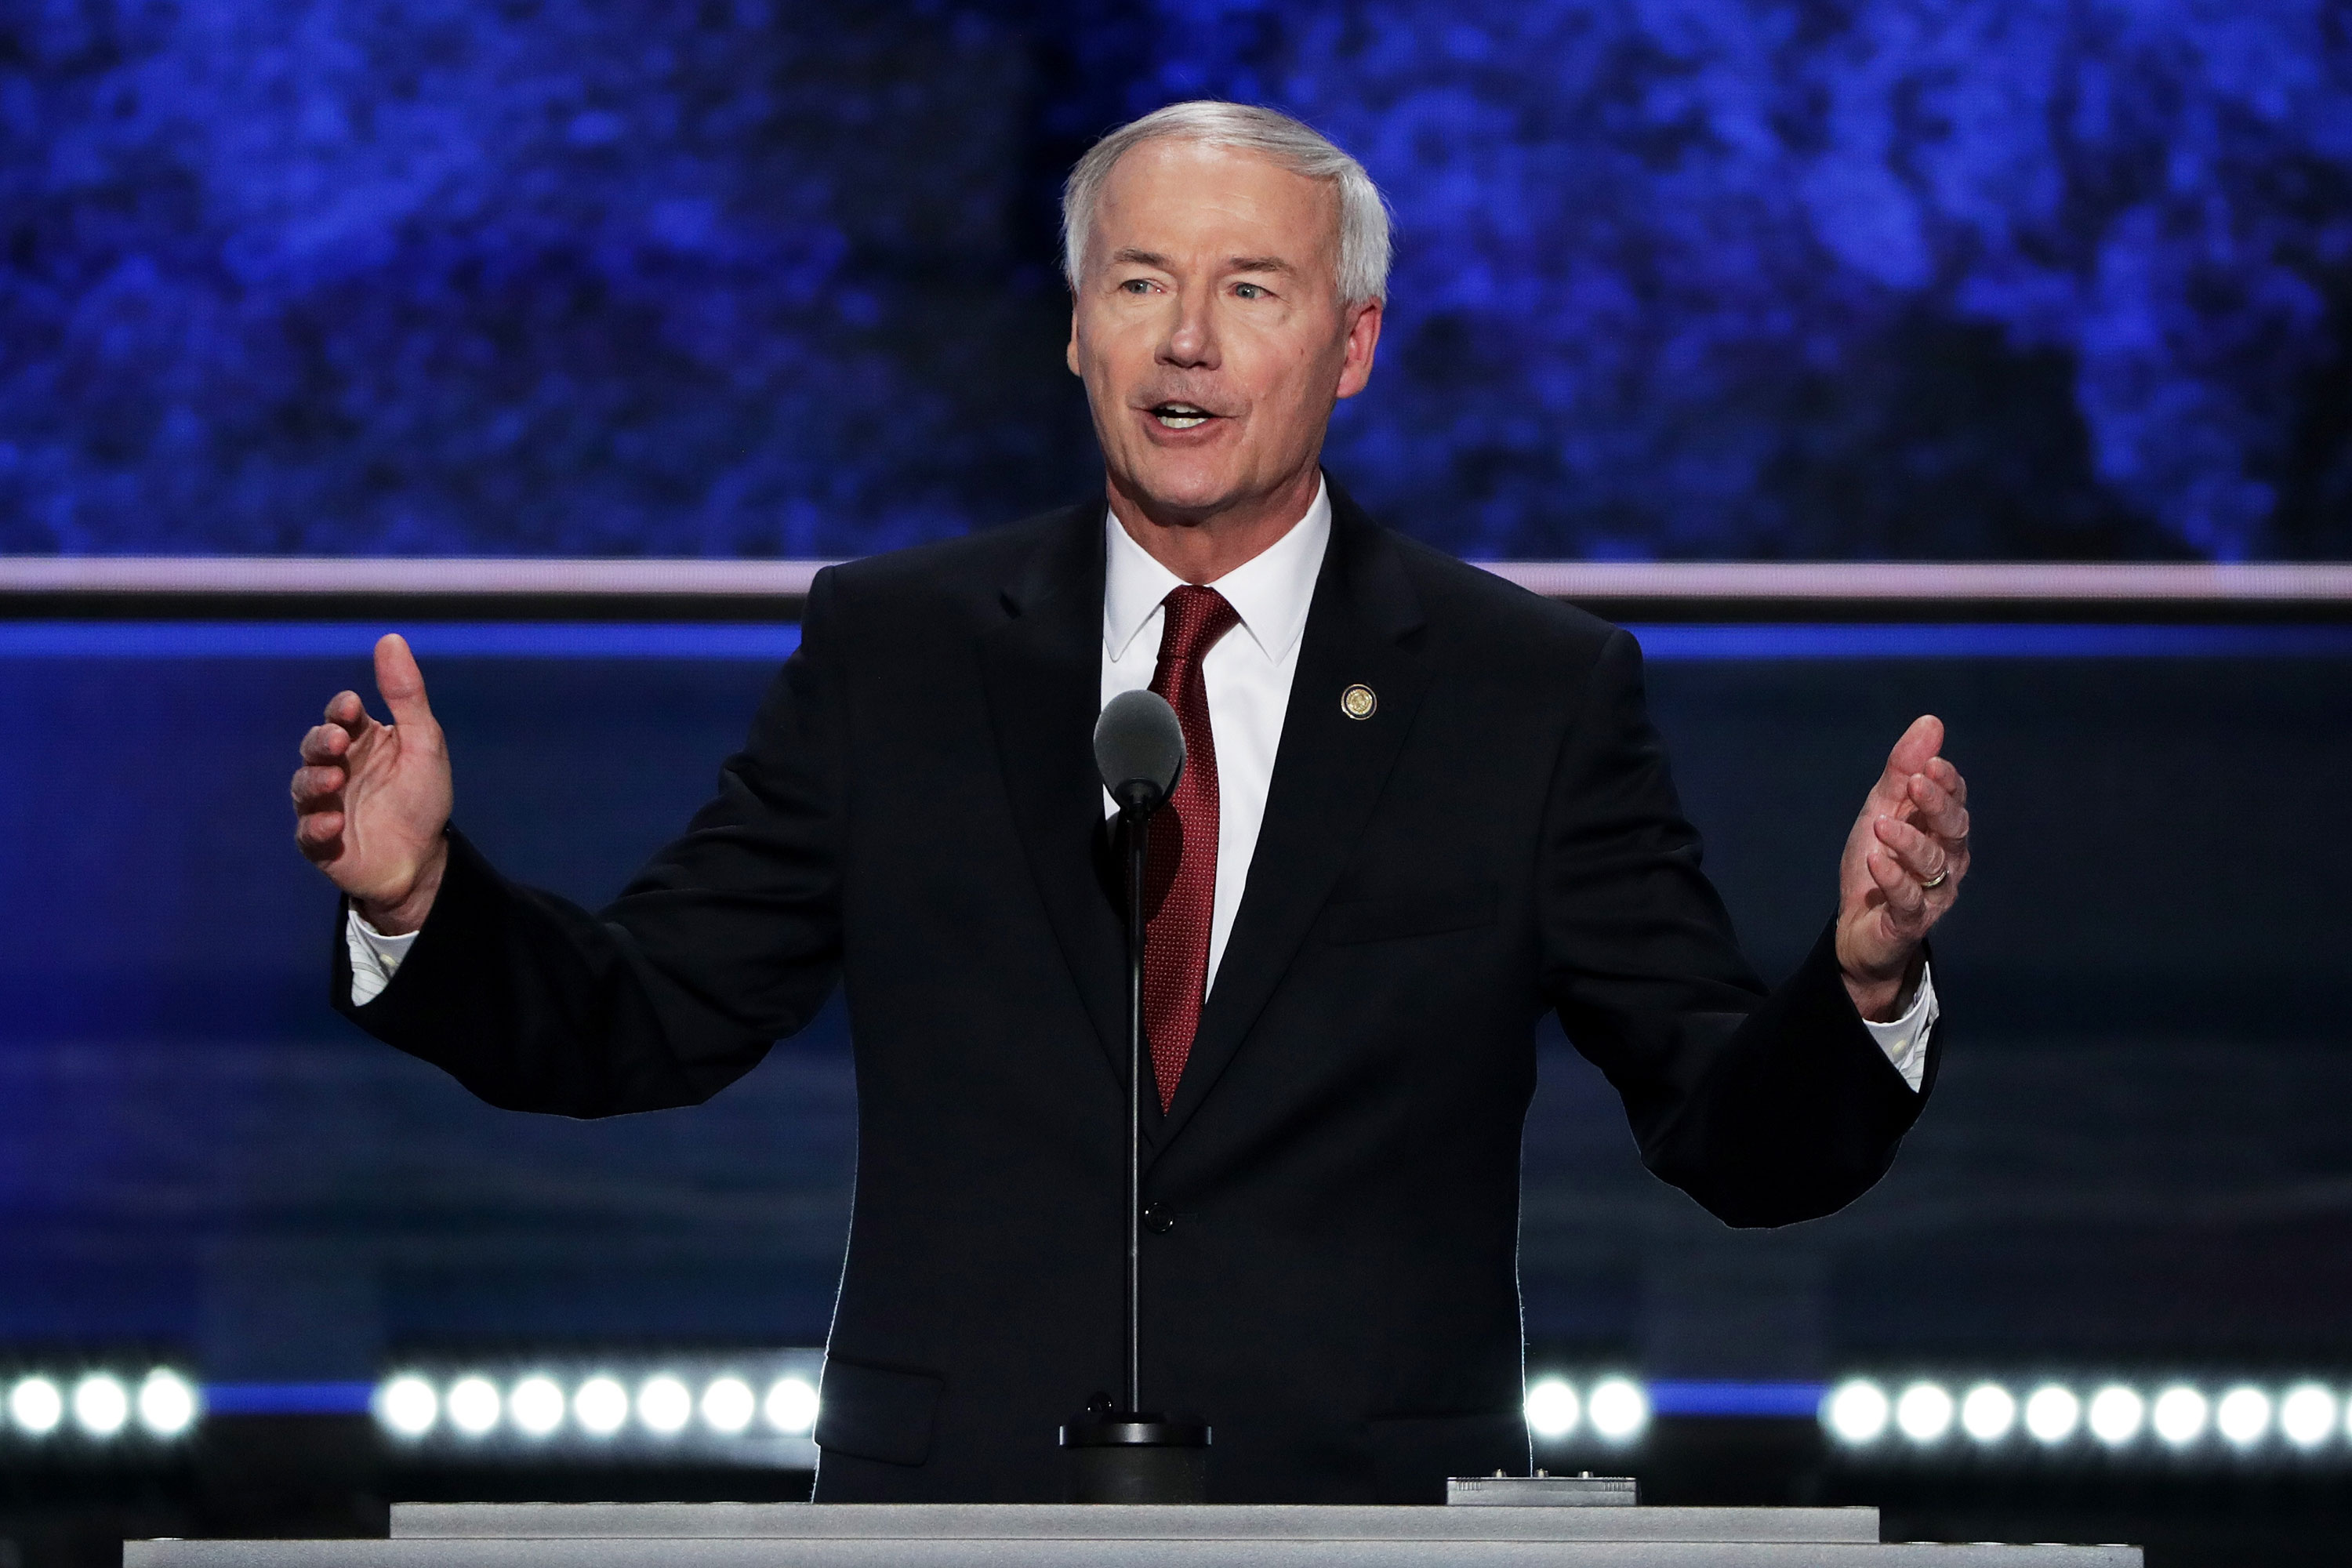 Gov. Asa Hutchinson delivers a speech during the 2016 Republican National Convention in Cleveland, Ohio.